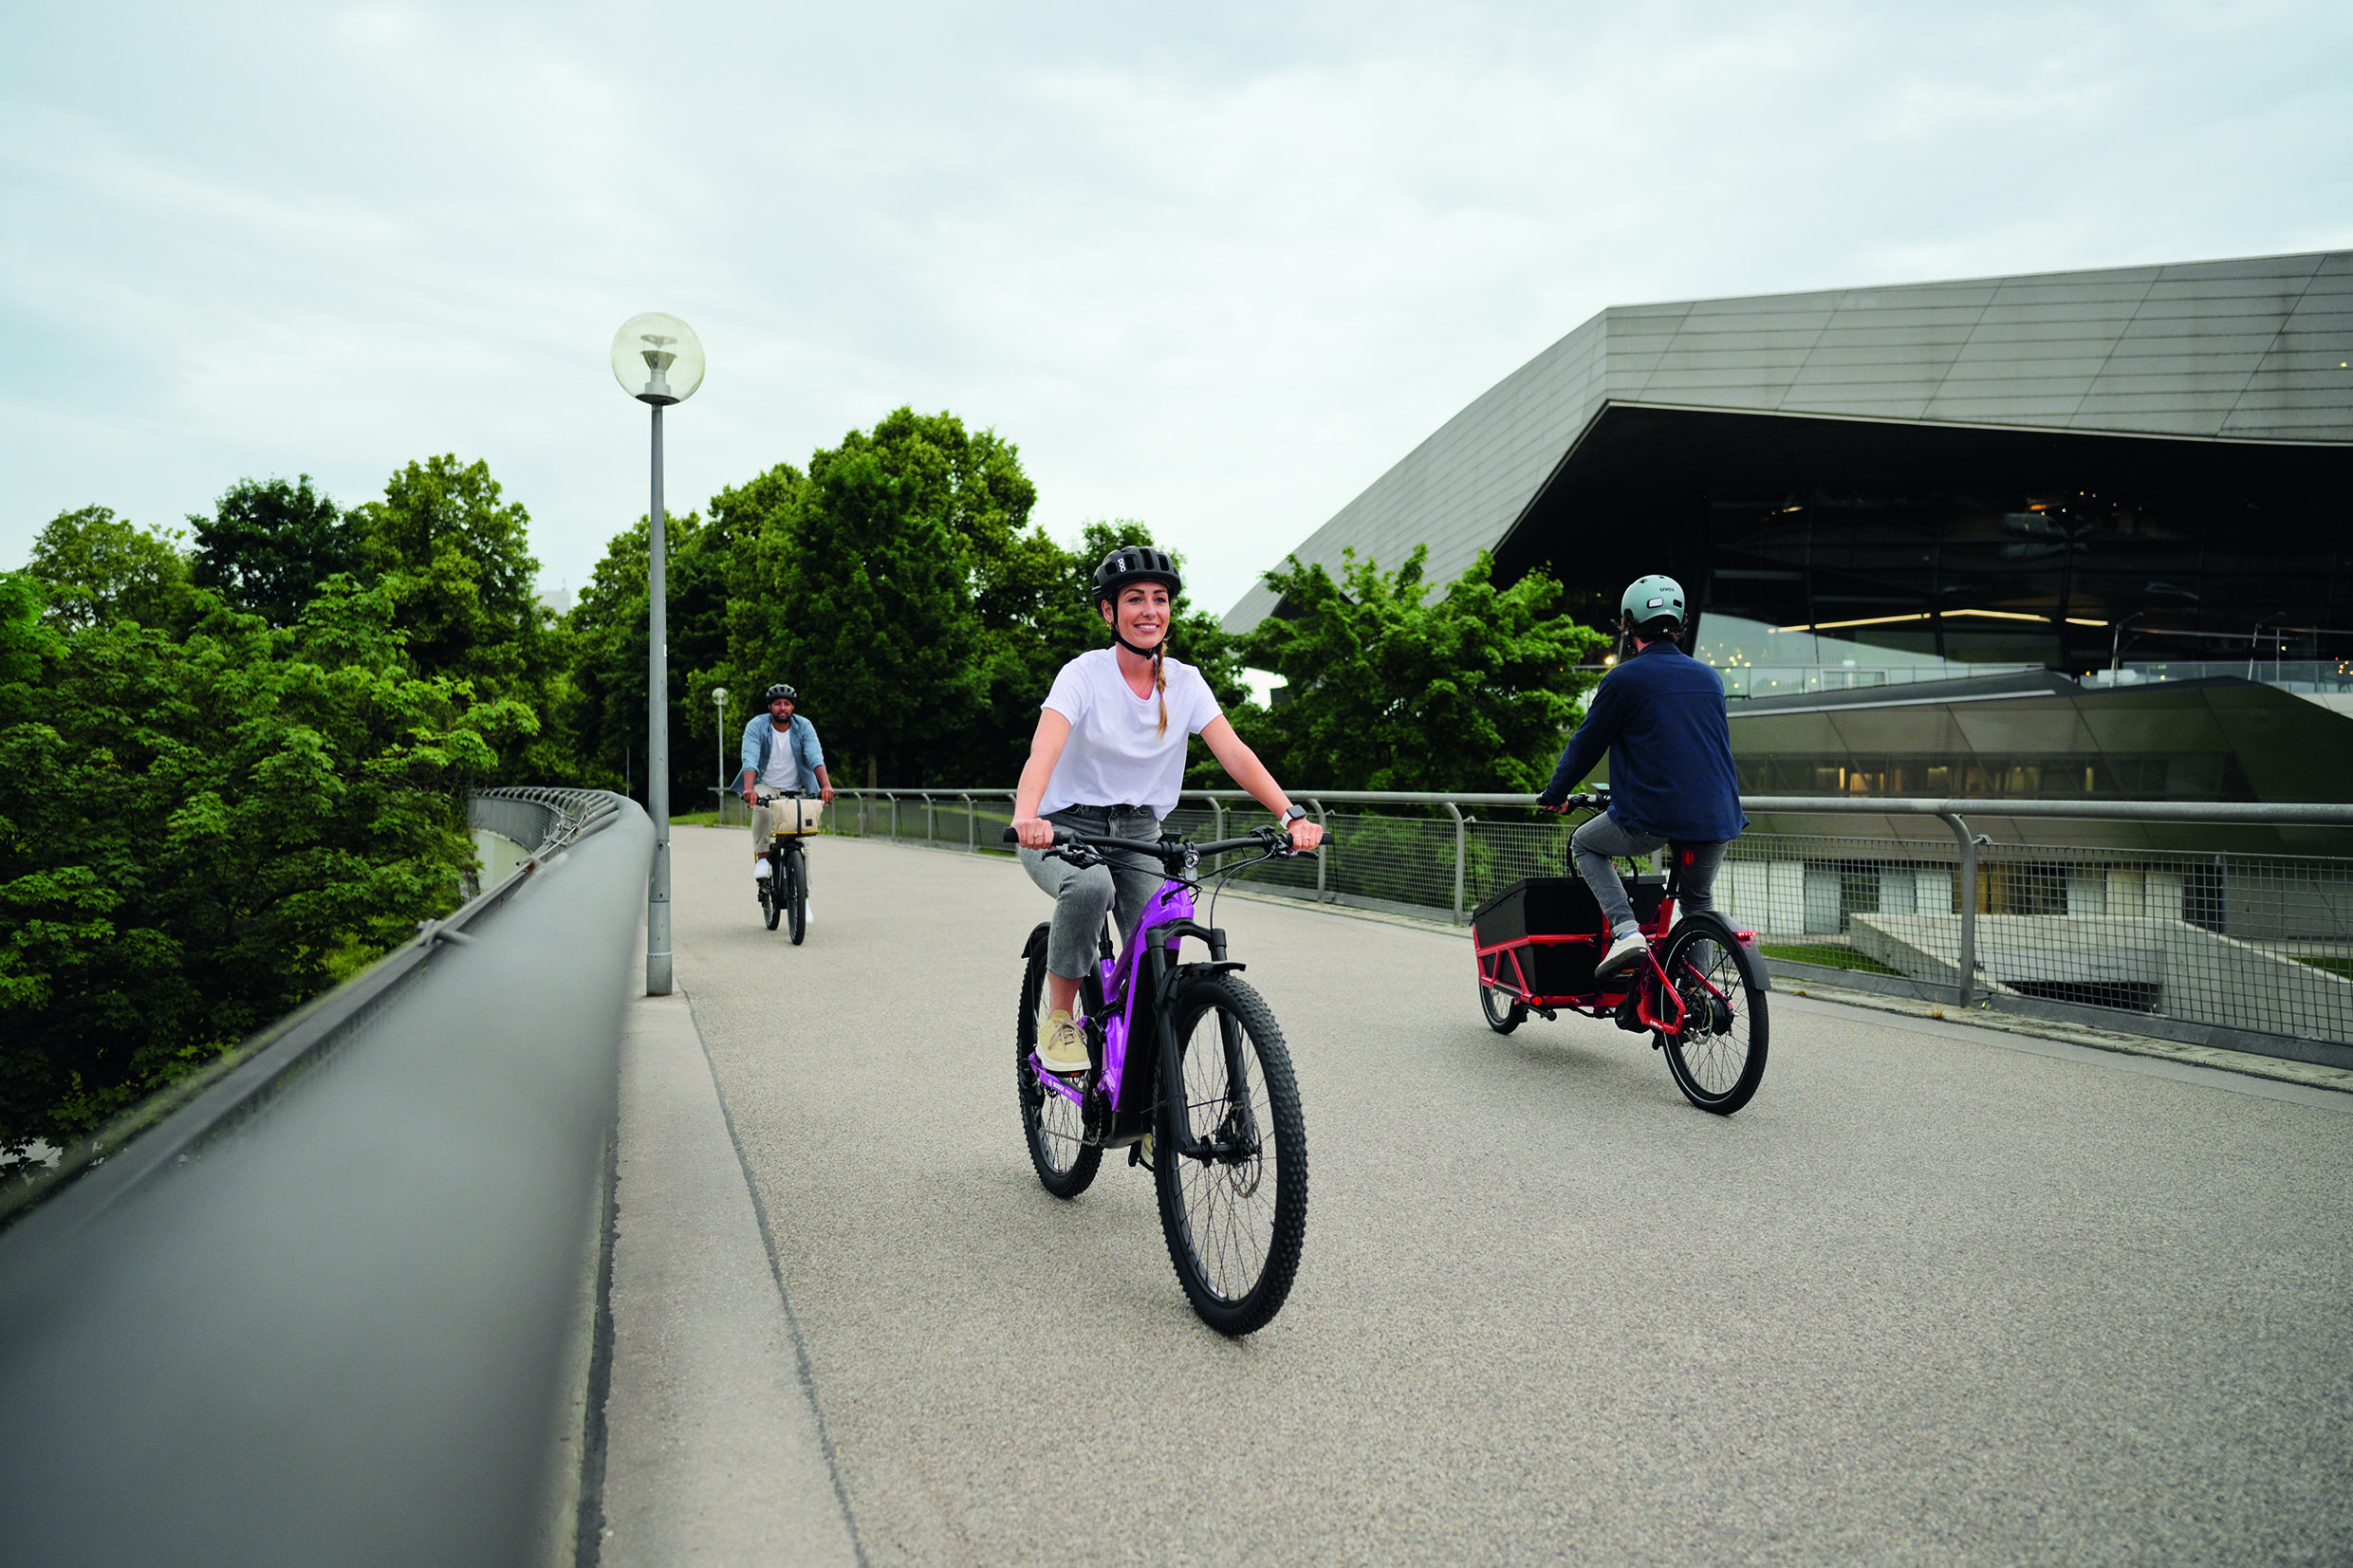 Connected eBike